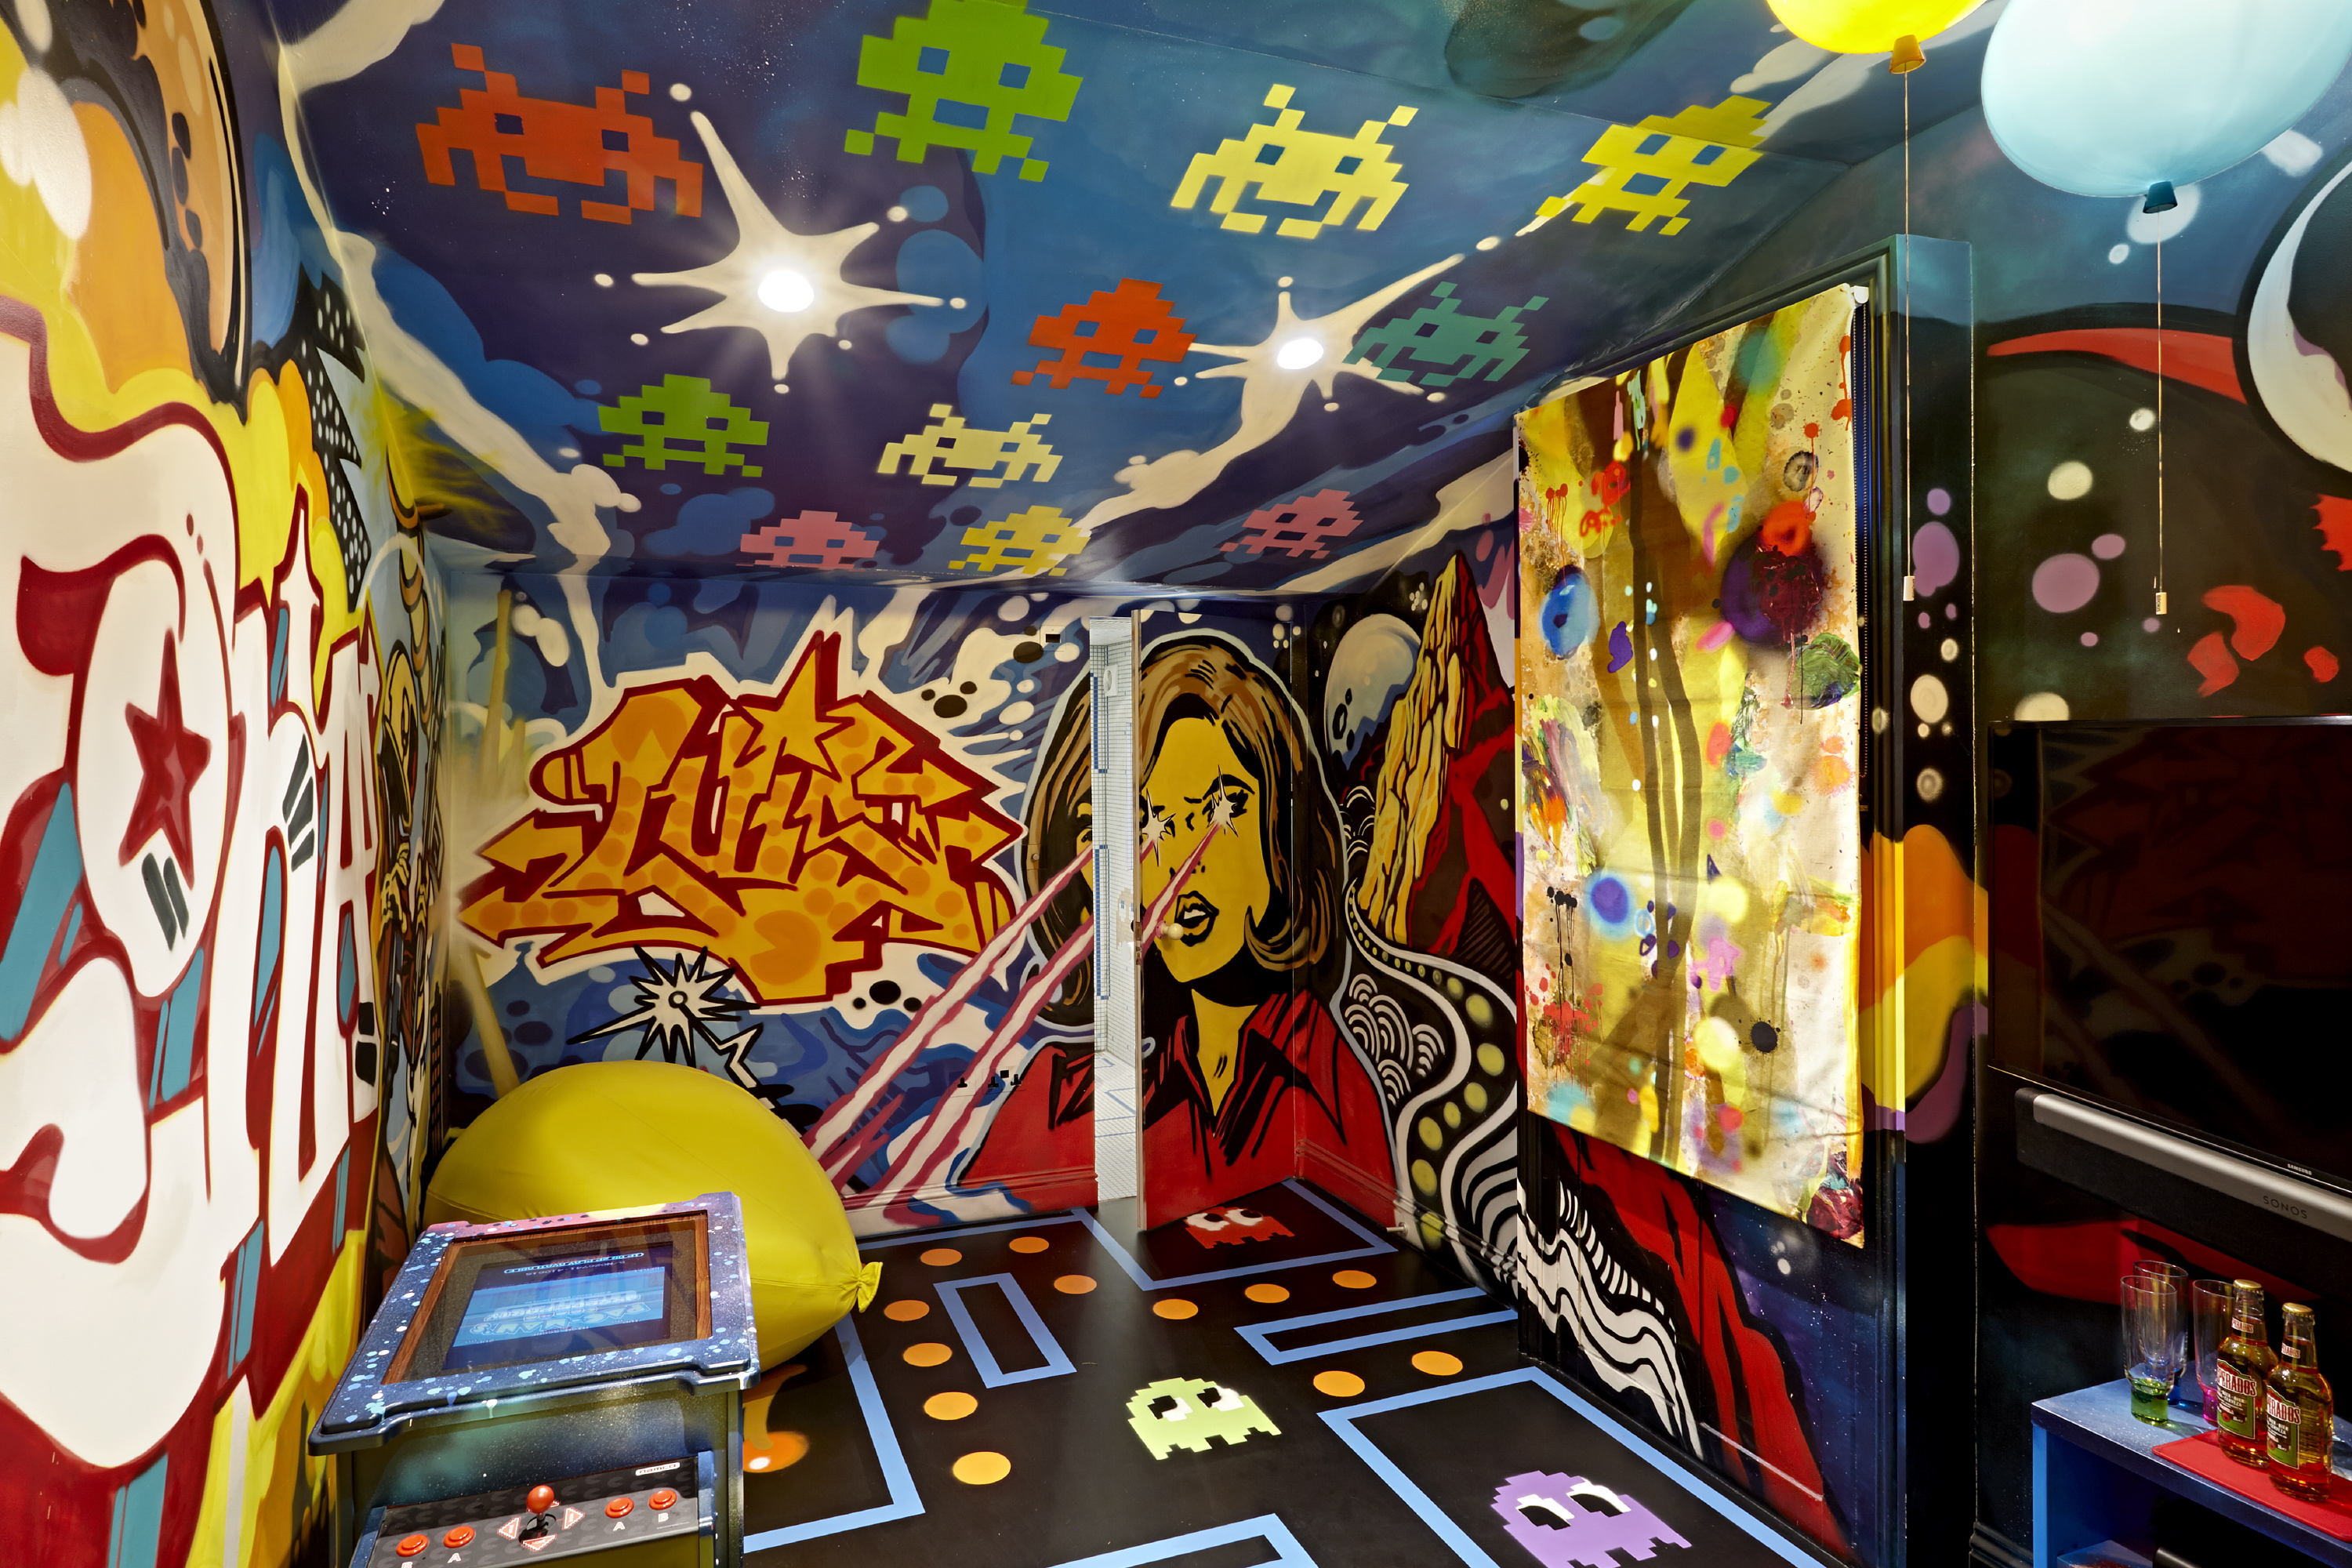 Interior Design, Surrey Fun House, UK, Clare Gaskin